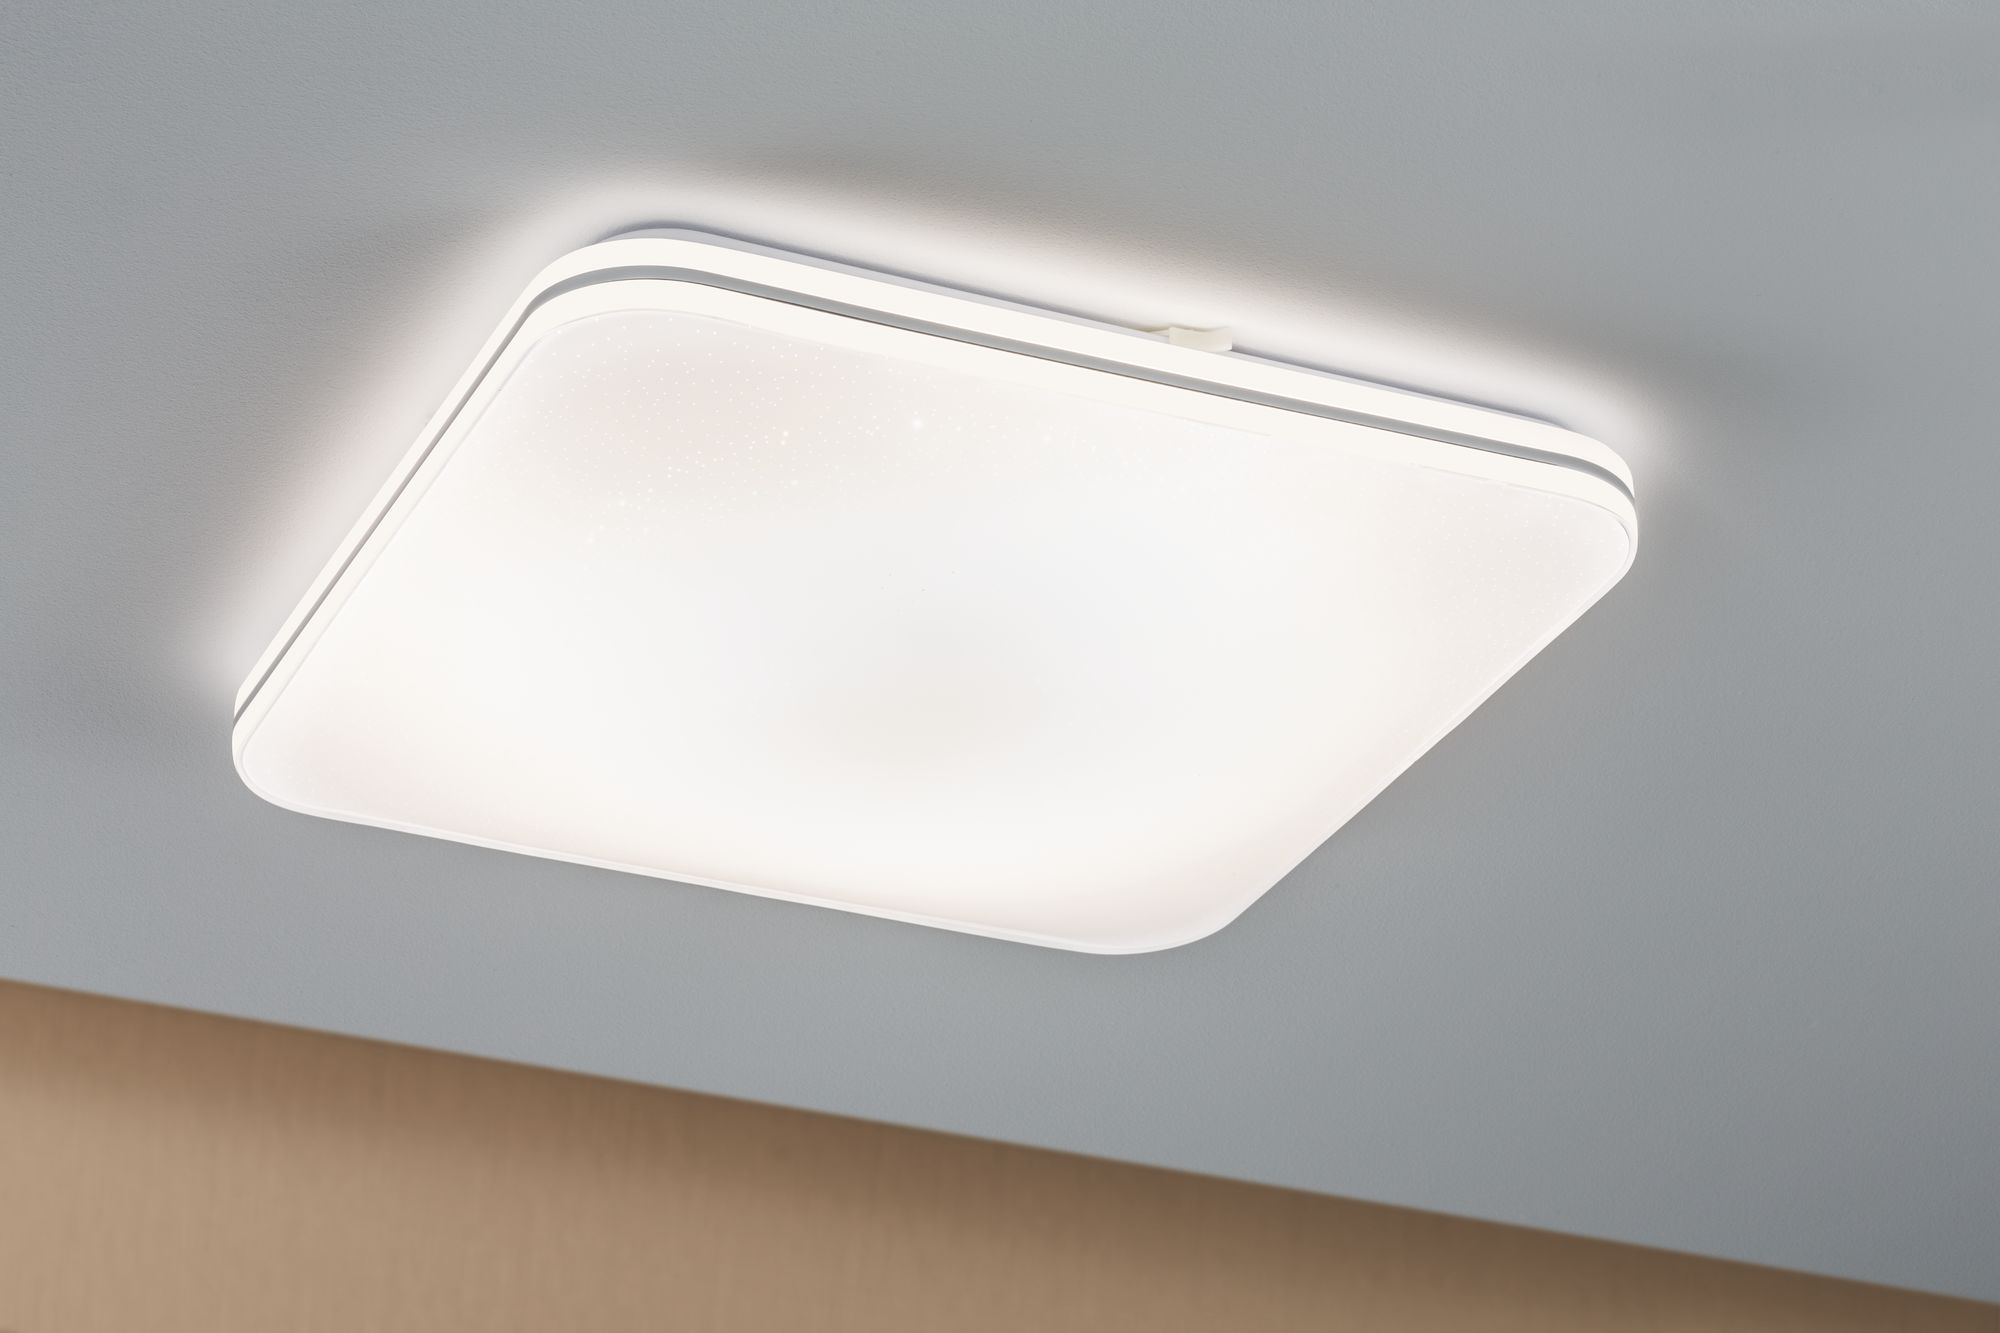 Paulmann WallCeiling Costella LED 22W 430x430mm Weiß 230V Acryl/Metall 70903